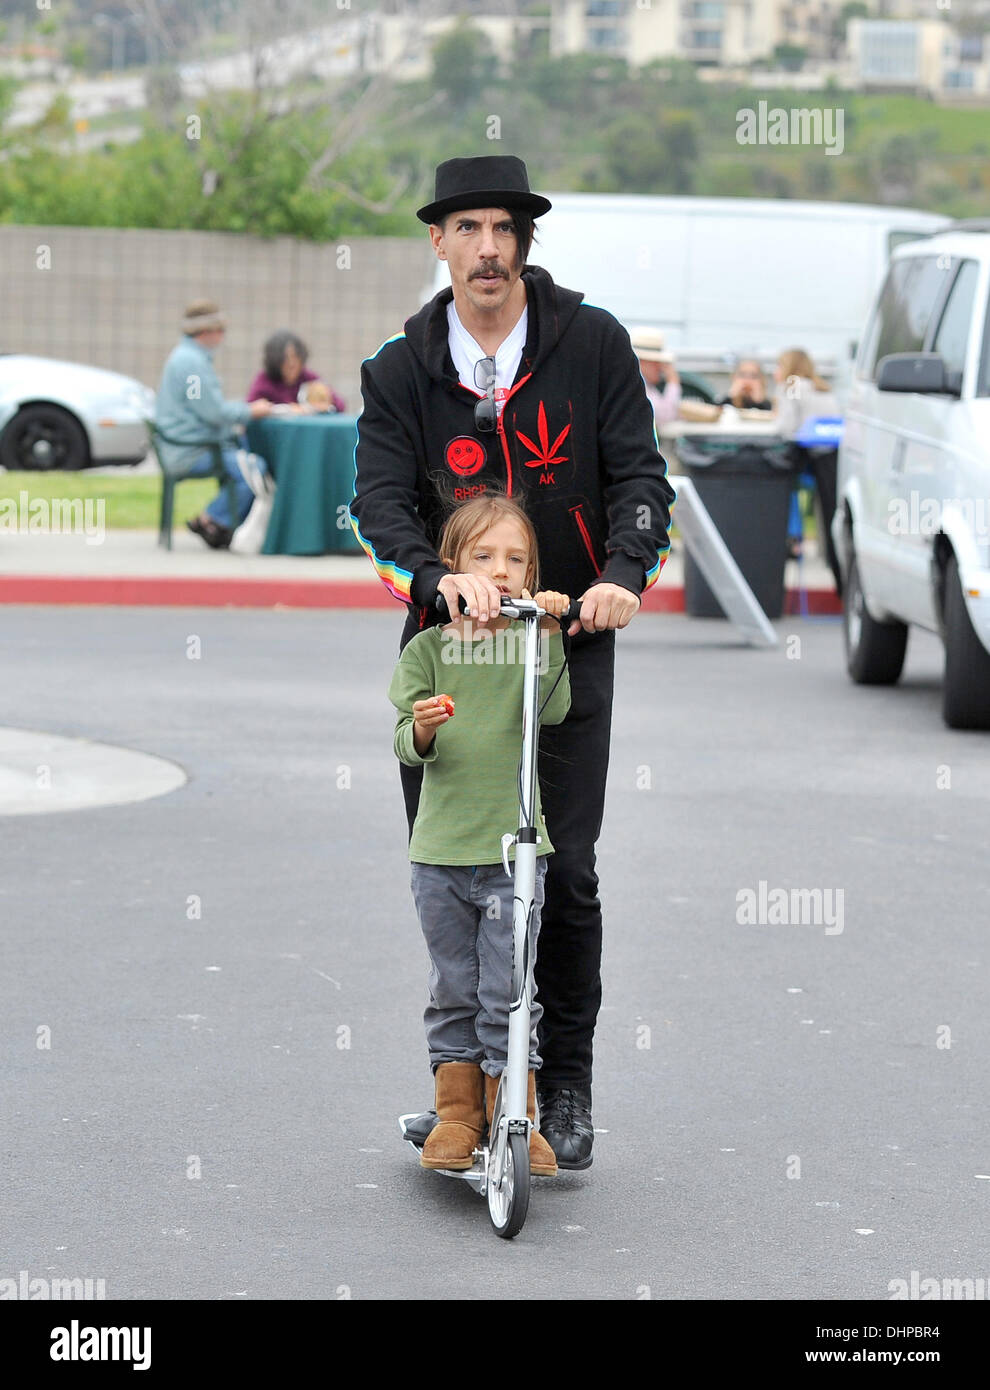 Anthony Kiedis of The Red Hot Chilli Peppers takes a ride on